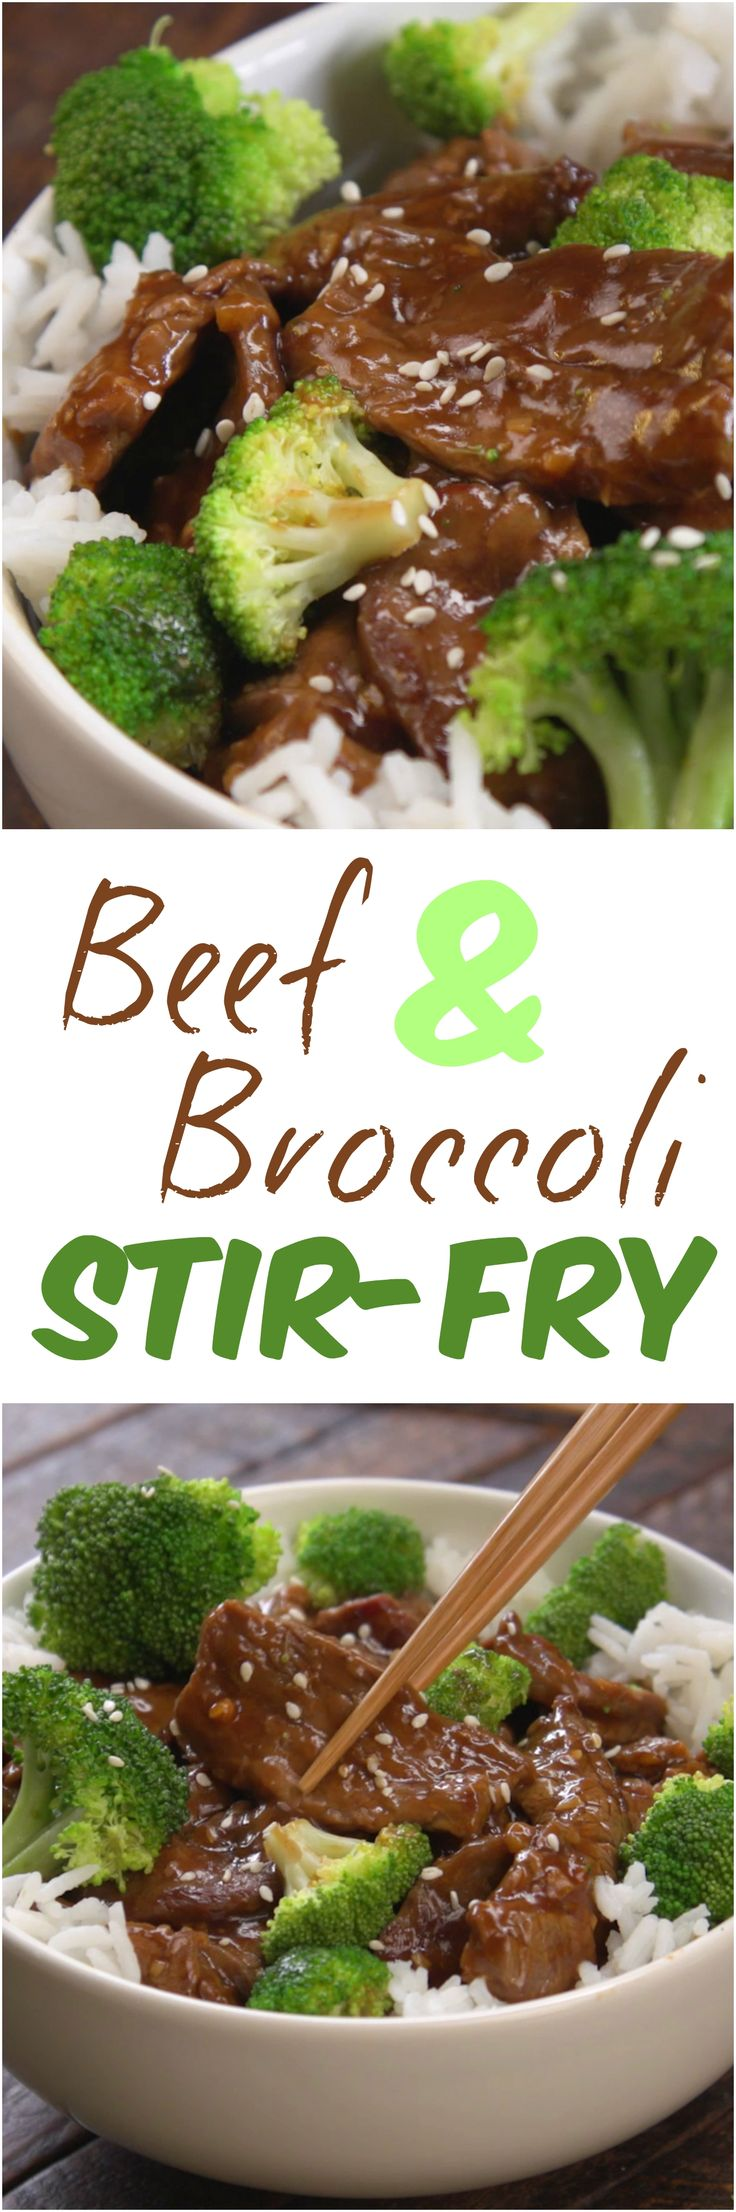 This quick and easy restaurant-style stir-fry will put your local takeout spot to shame: juicy steak bites and crisp-tender broccoli florets coated in an easy Chinese-inspired stir-fry sauce.